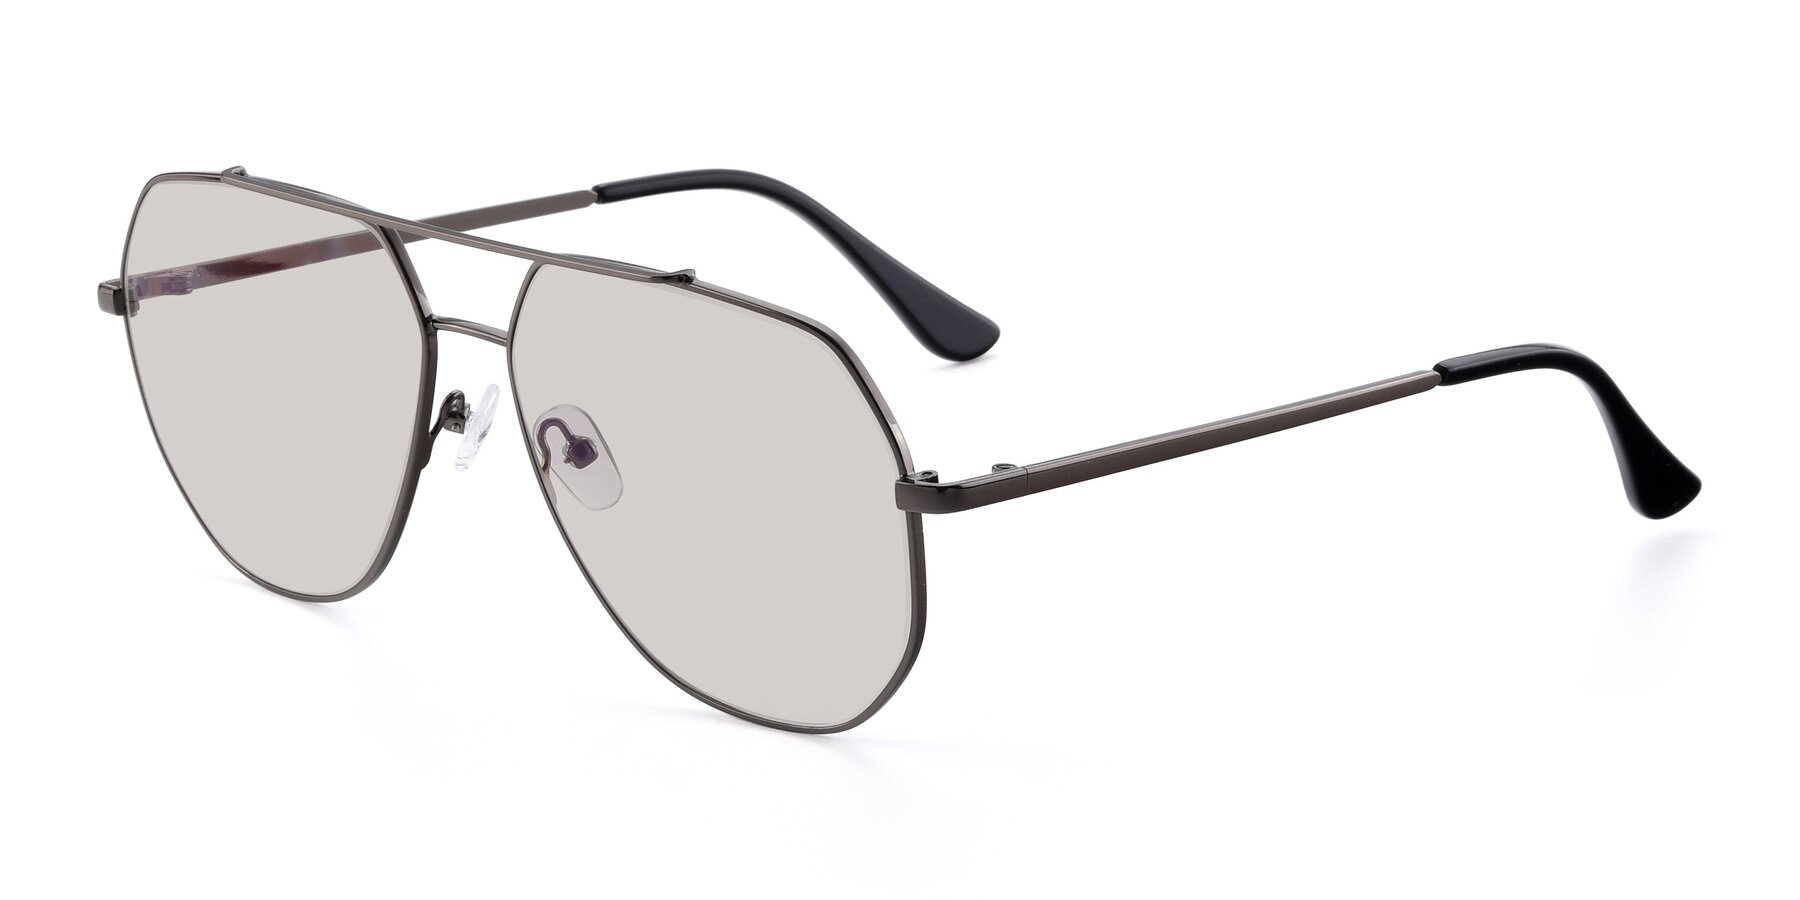 Angle of 9438 in Gunmetal with Light Brown Tinted Lenses